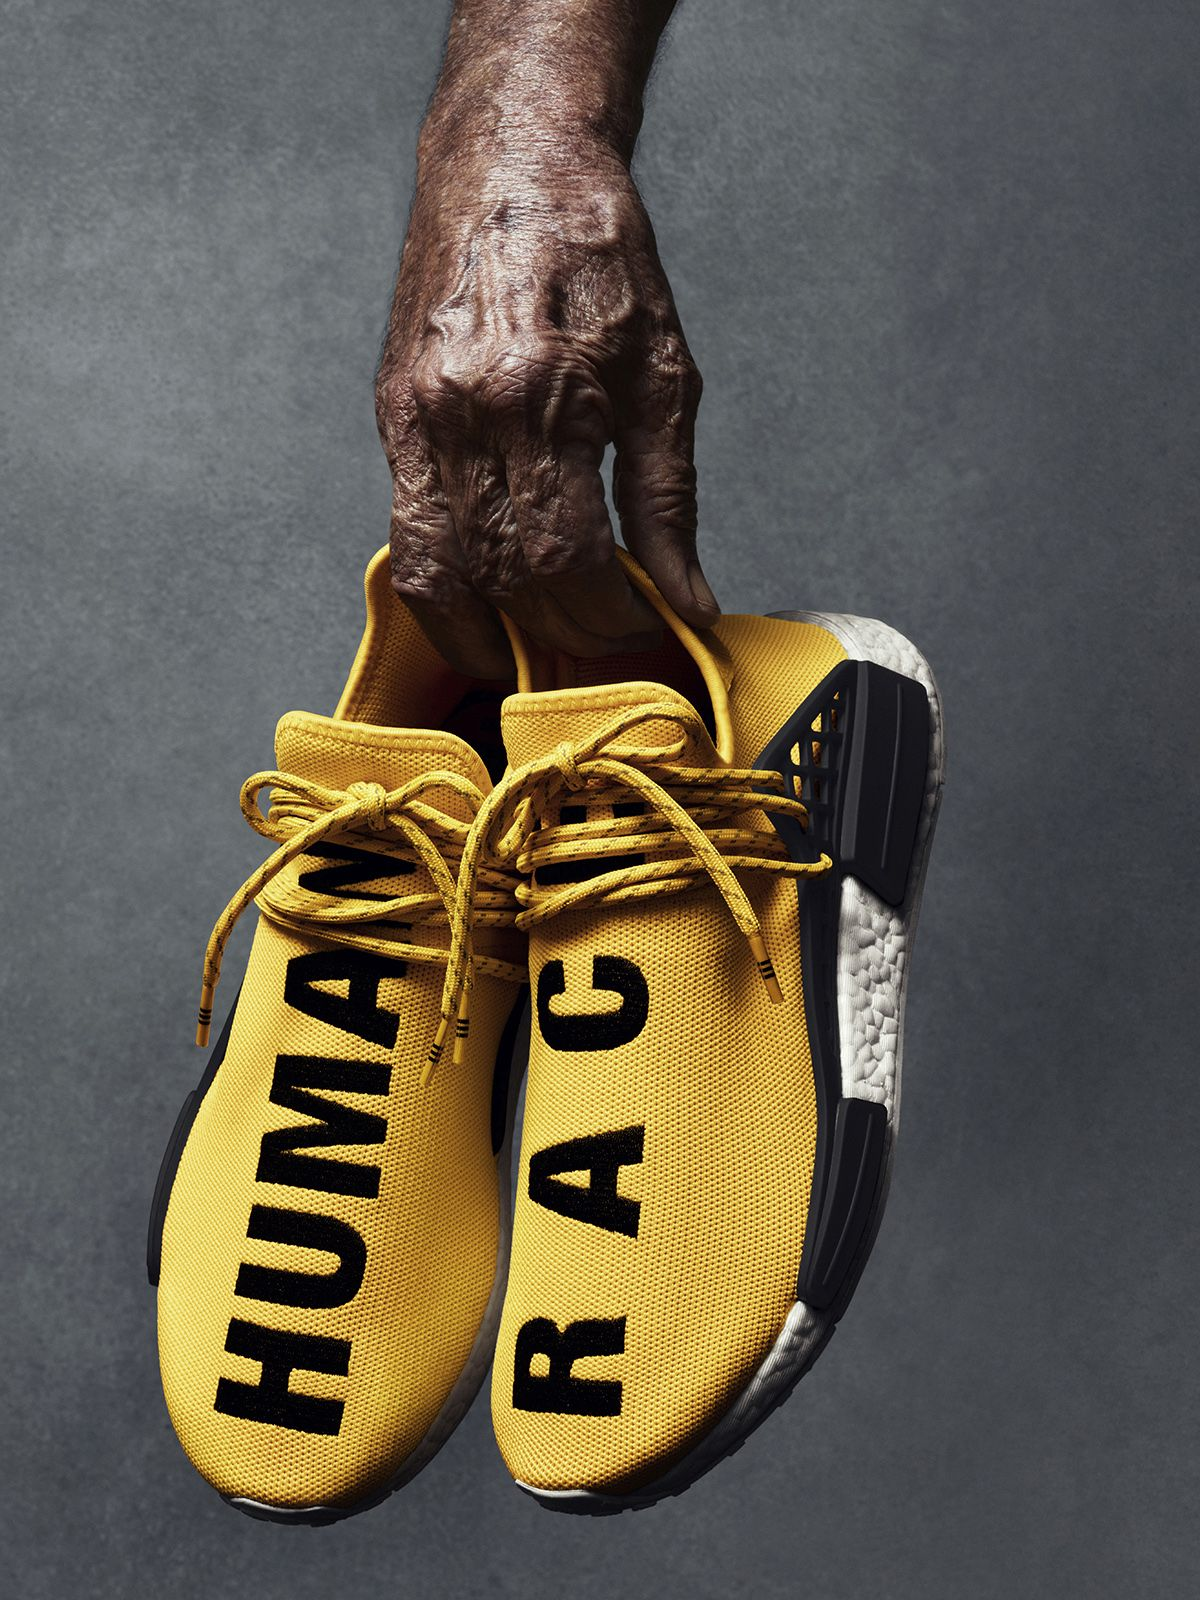 The Pharrell x adidas NMD Human Race Pack Is Now Available